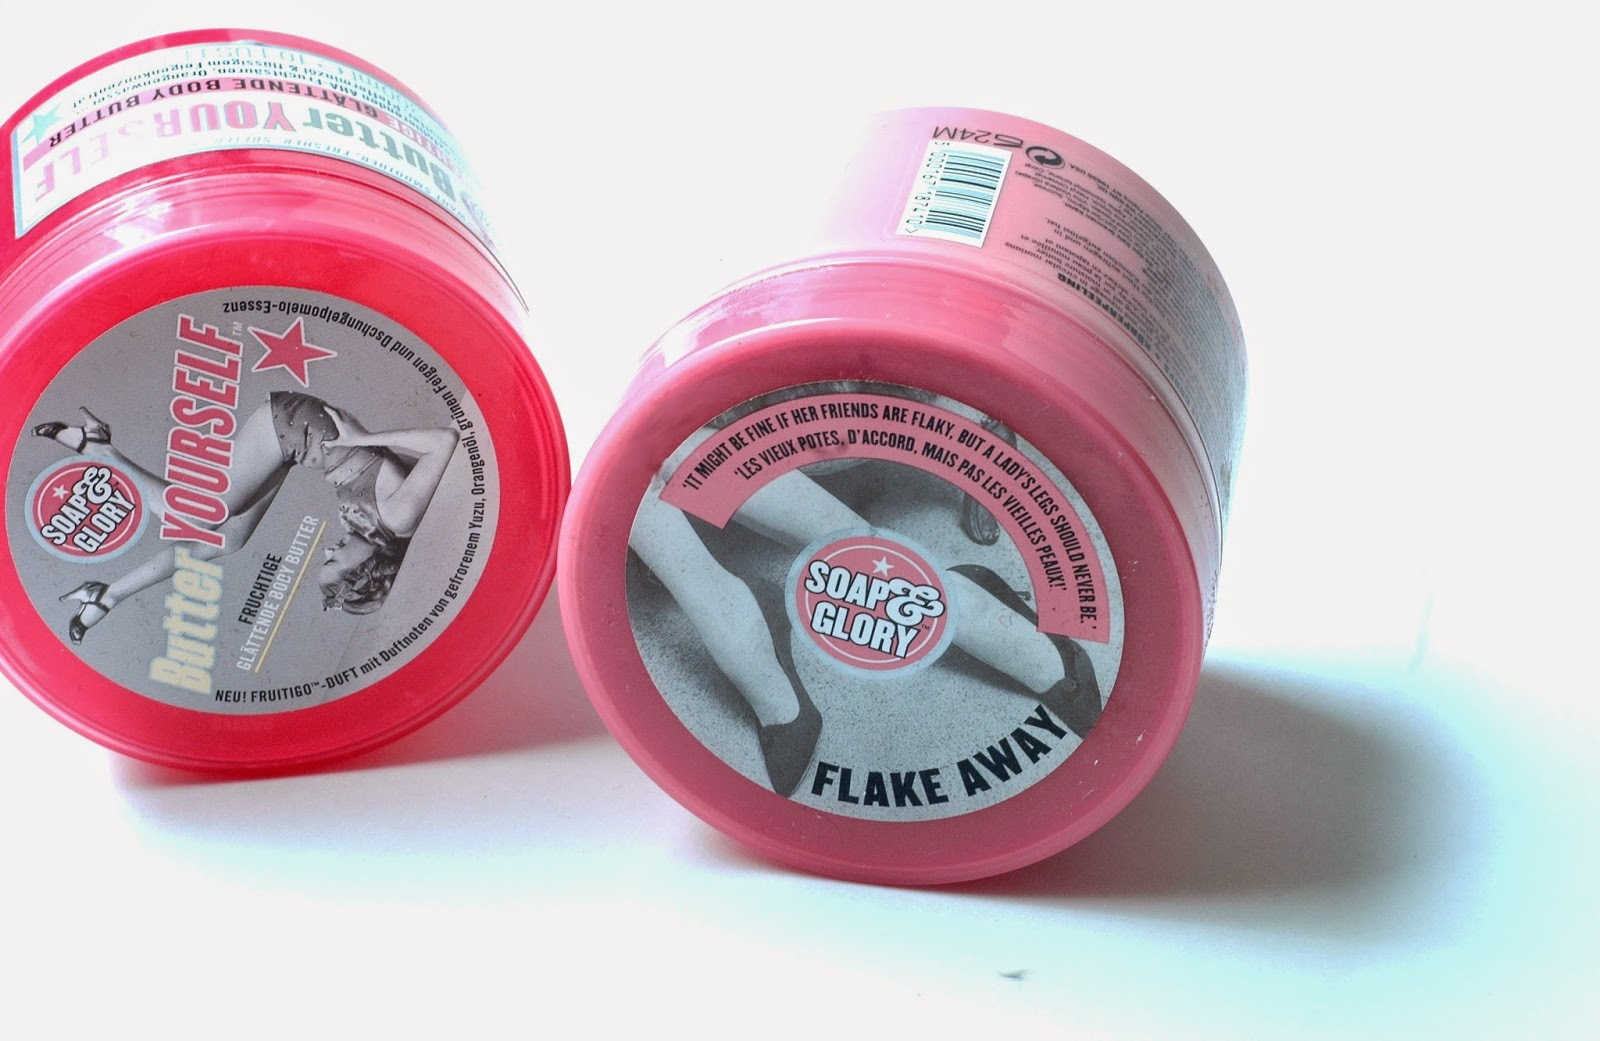 Soap and Glory Flake Away Peeling und Butter Yourself Creme